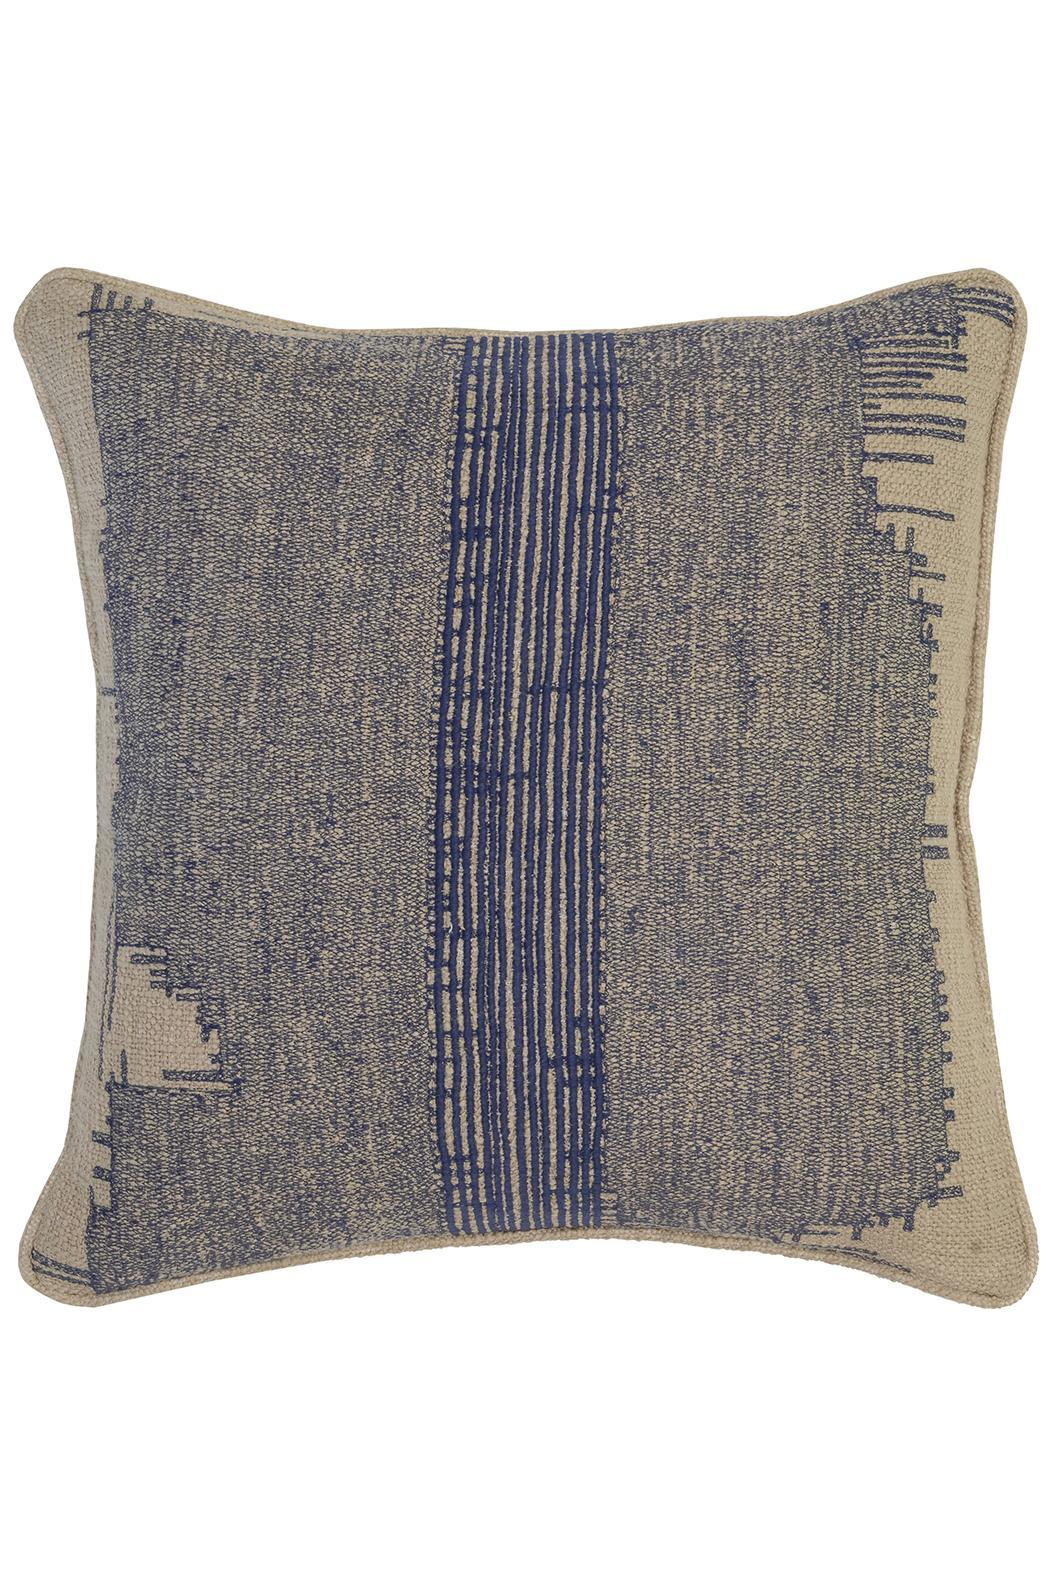 villa home collection celia indigo pillow from atlanta by  - villa home collection celia indigo pillow  front cropped image